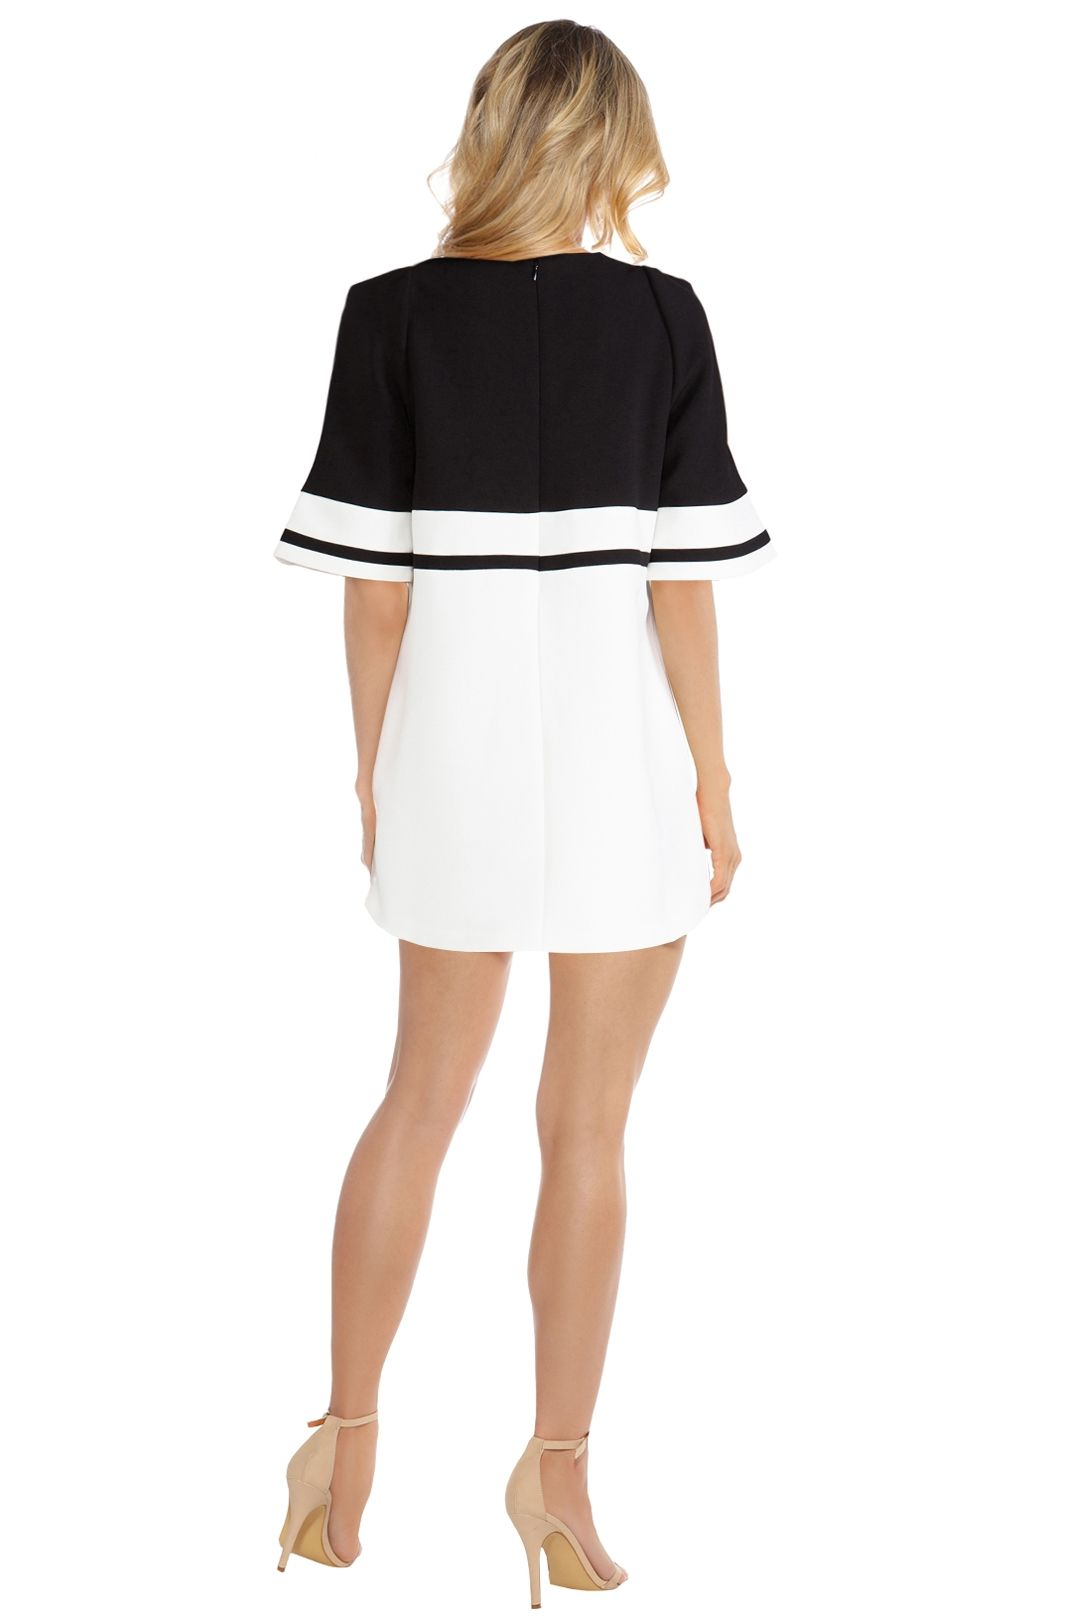 C/MEO Collective - We Are Young Dress - Black White - Back